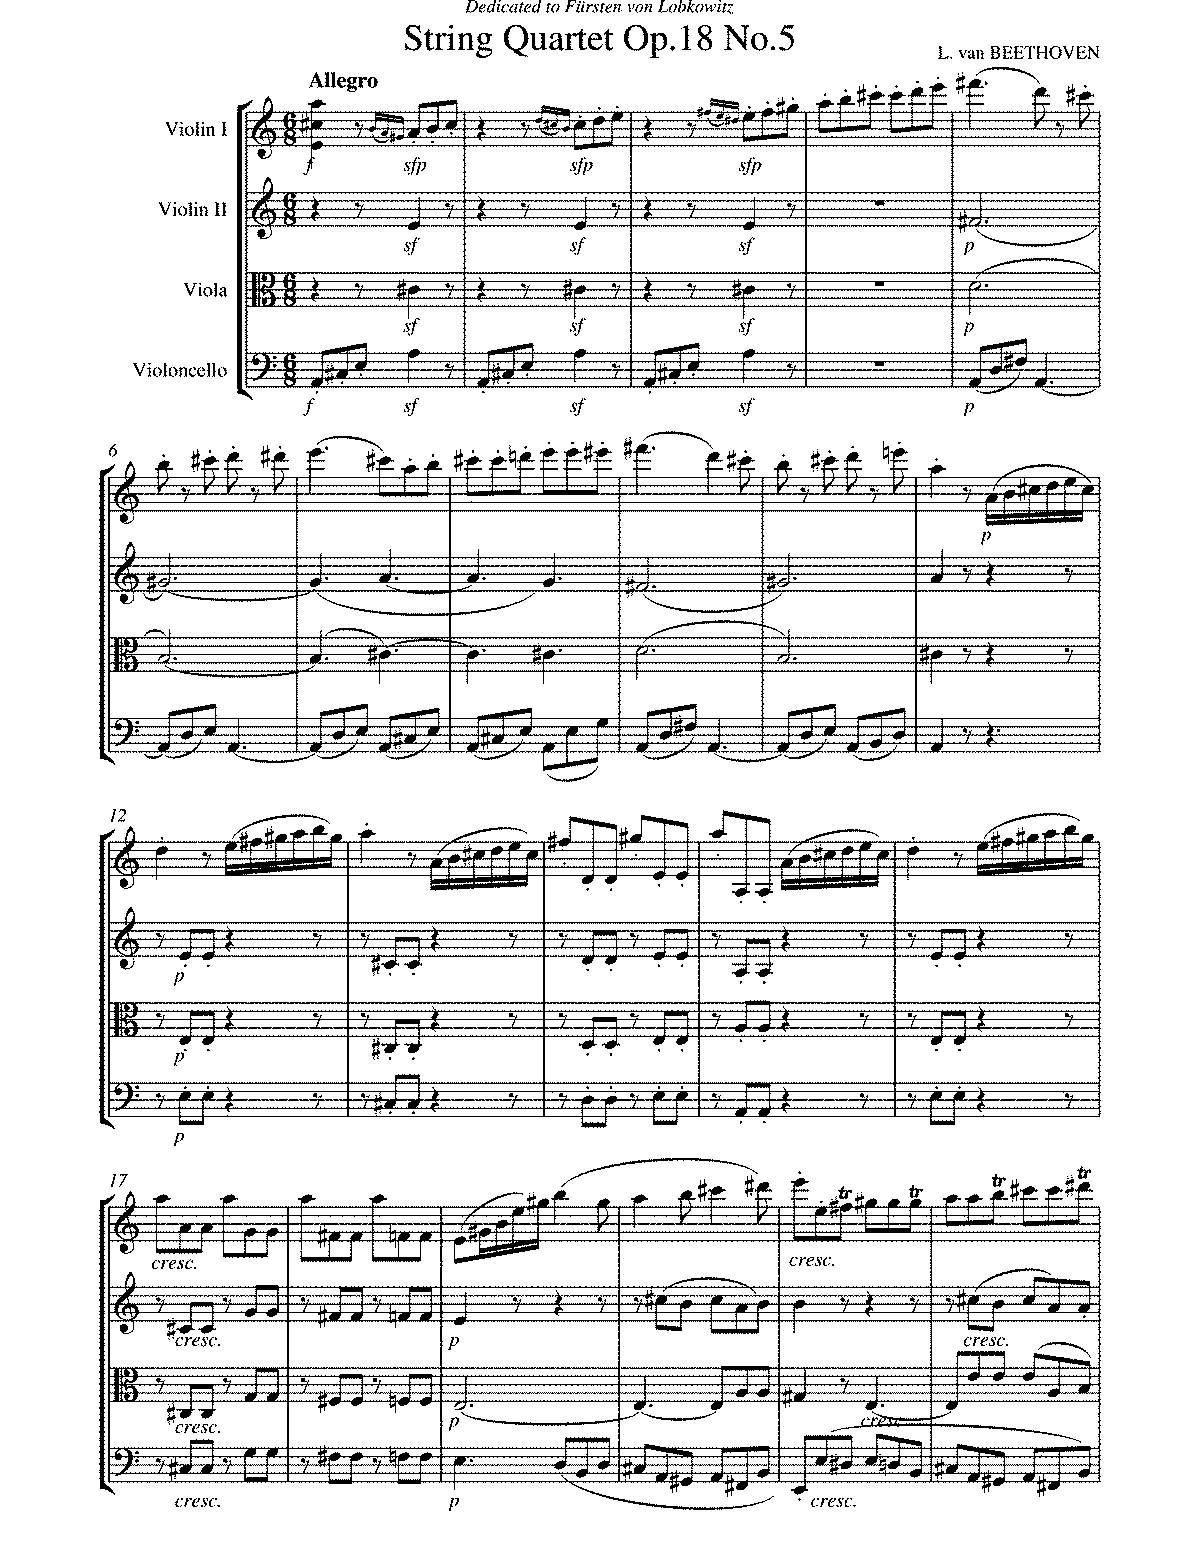 k333 mozart 2nd movement analysis Mozart k310 sonata (2nd movement) essays: over 180,000 mozart k310 sonata (2nd movement) essays, mozart k310 sonata (2nd movement) term papers, mozart k310 sonata (2nd movement) research.